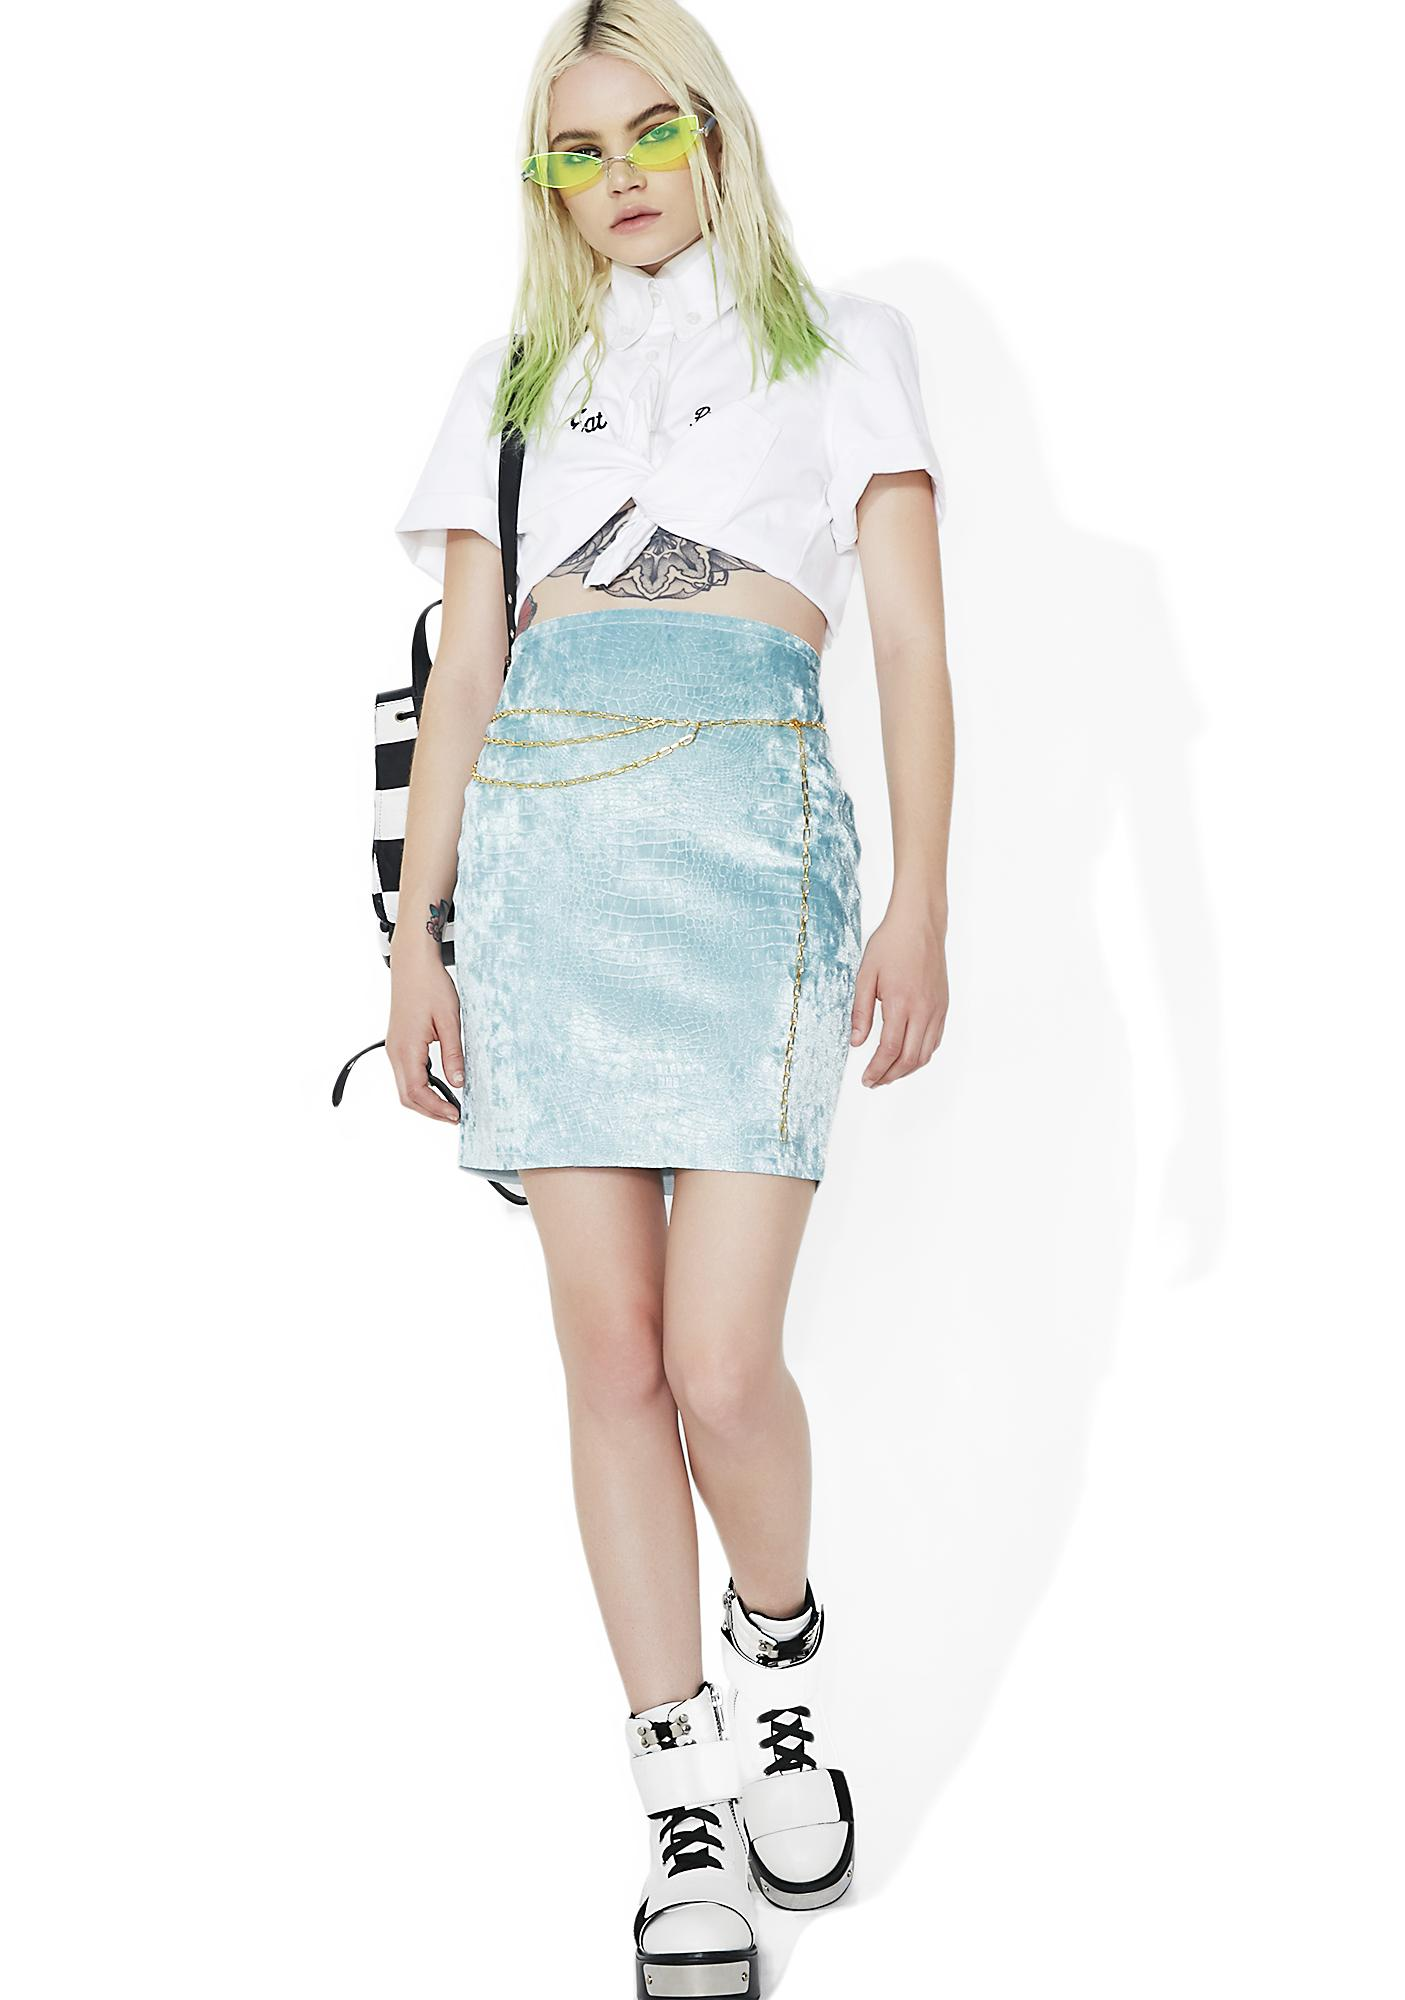 Sicko Cartel Ice Blue Croc Skirt